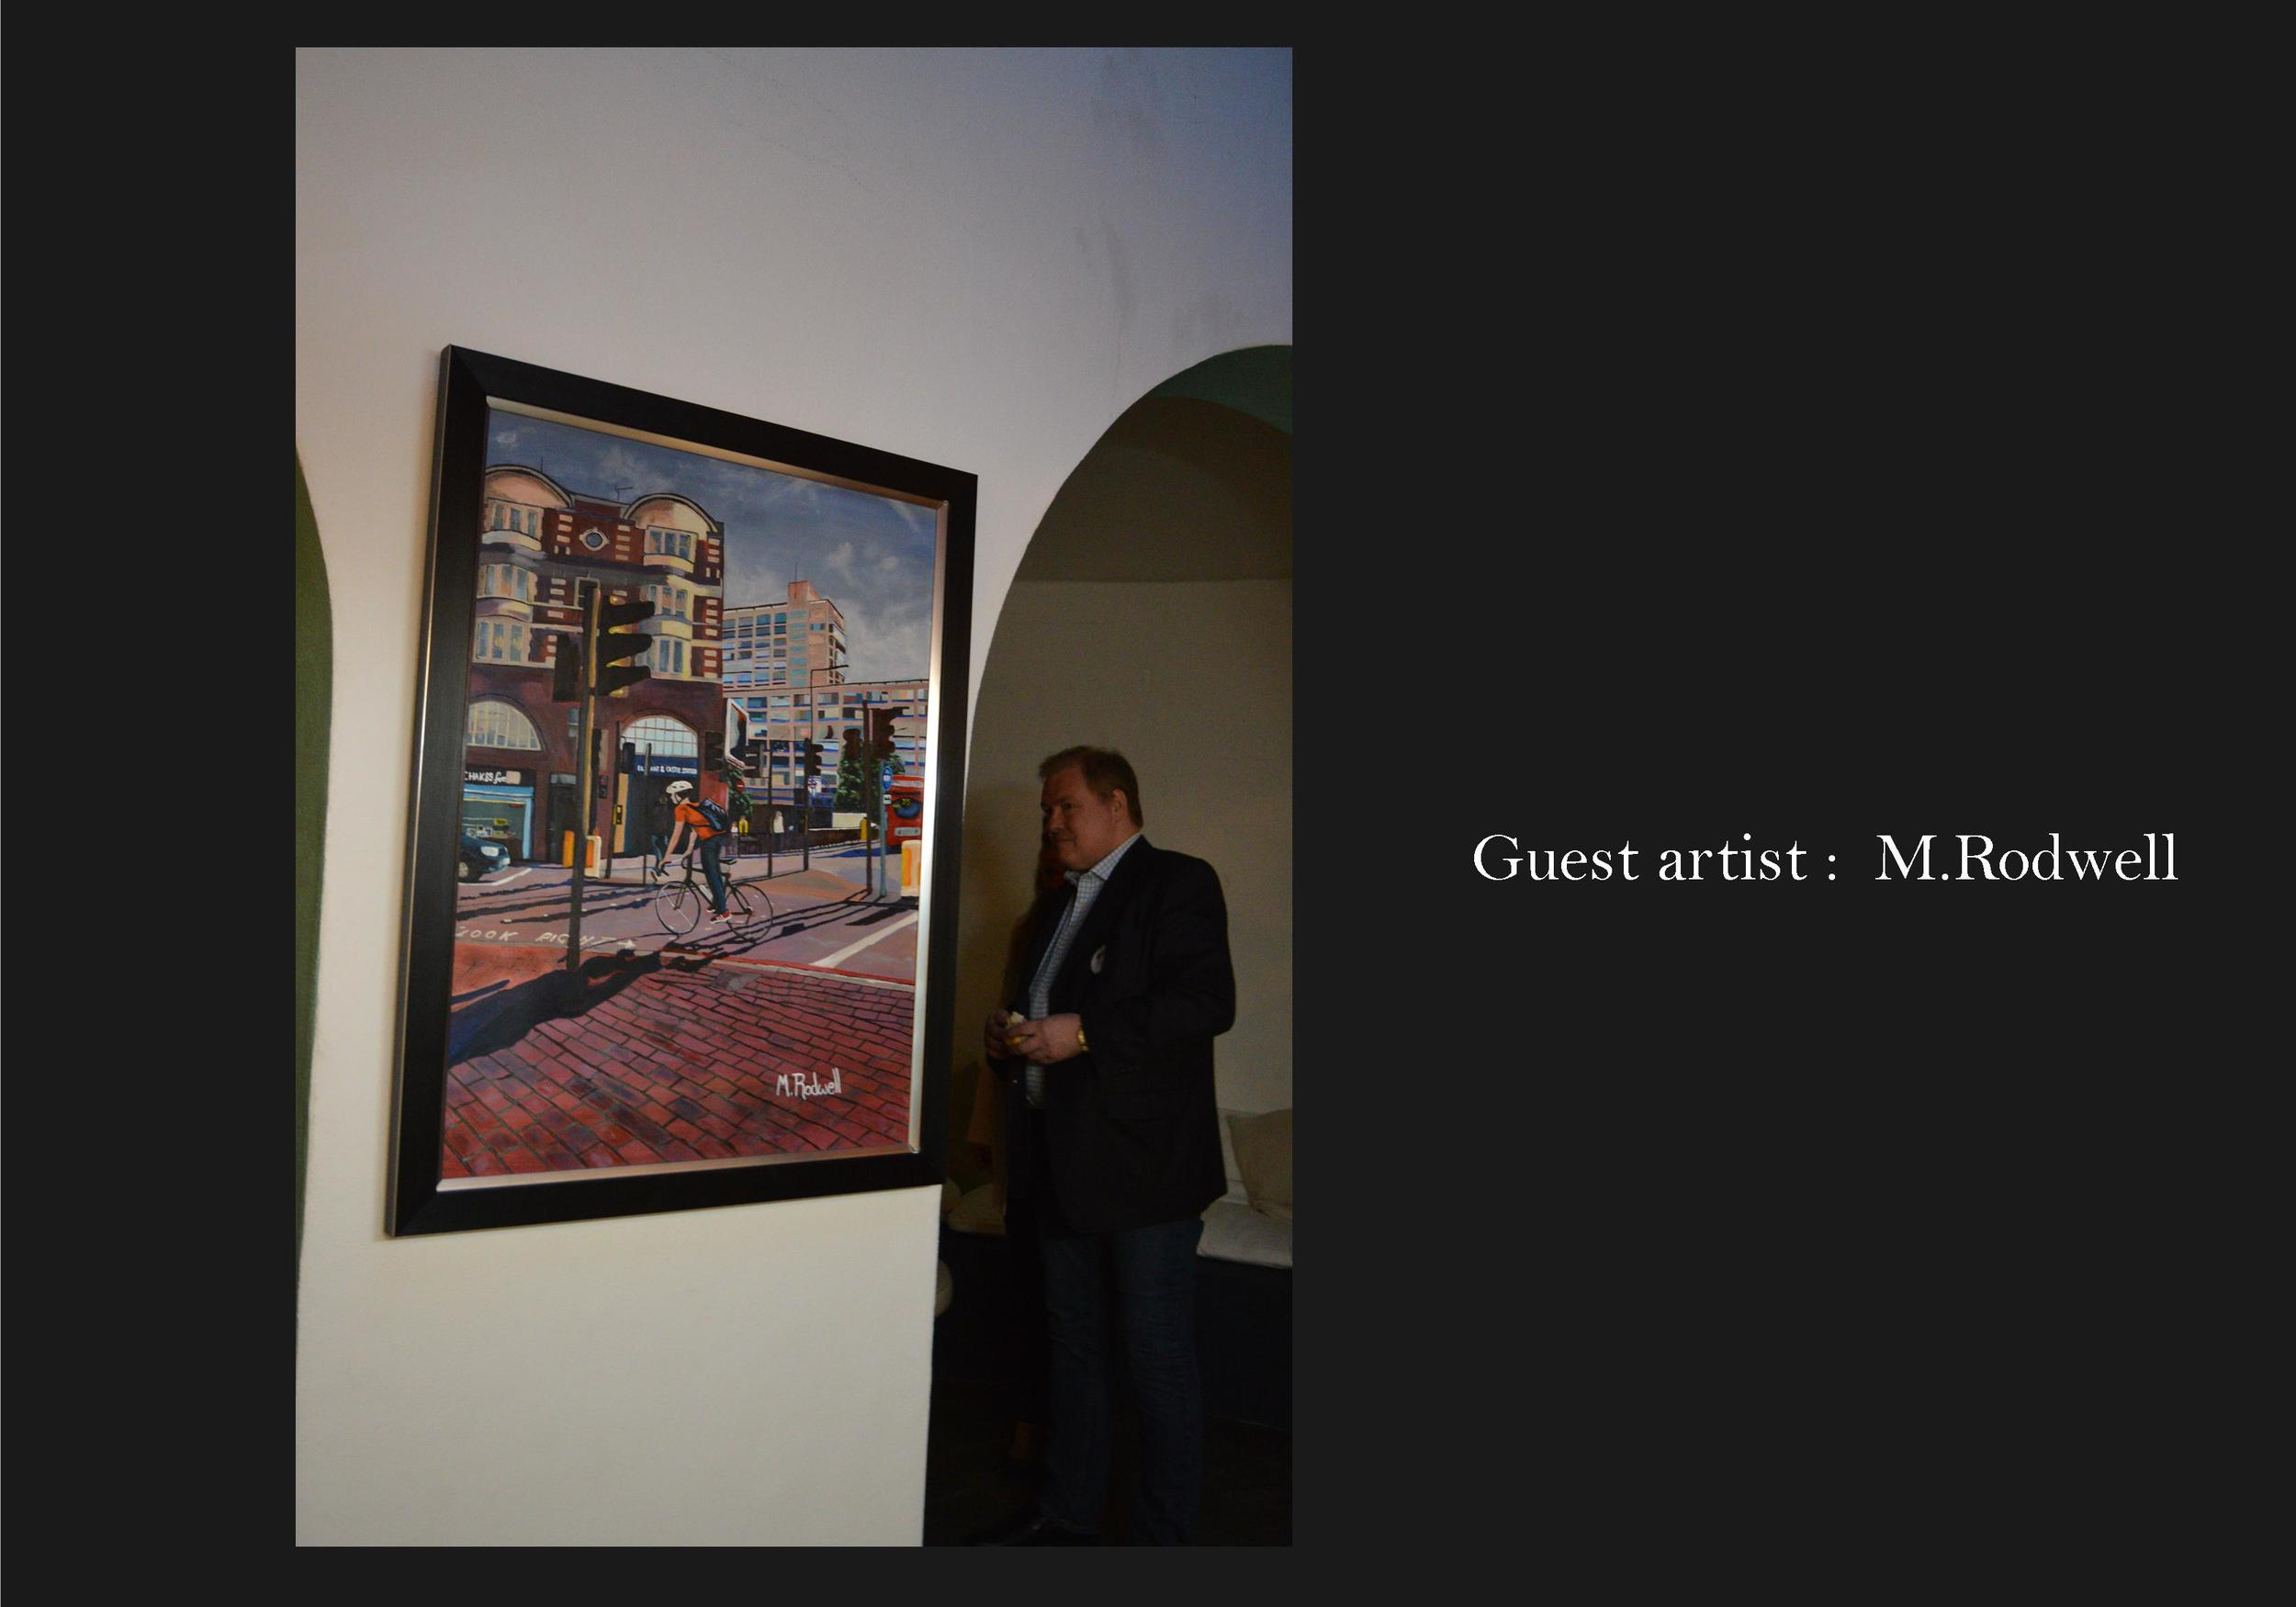 Glasshouse | Elephant and Castle Painting Exhibited | by M.Rodwell